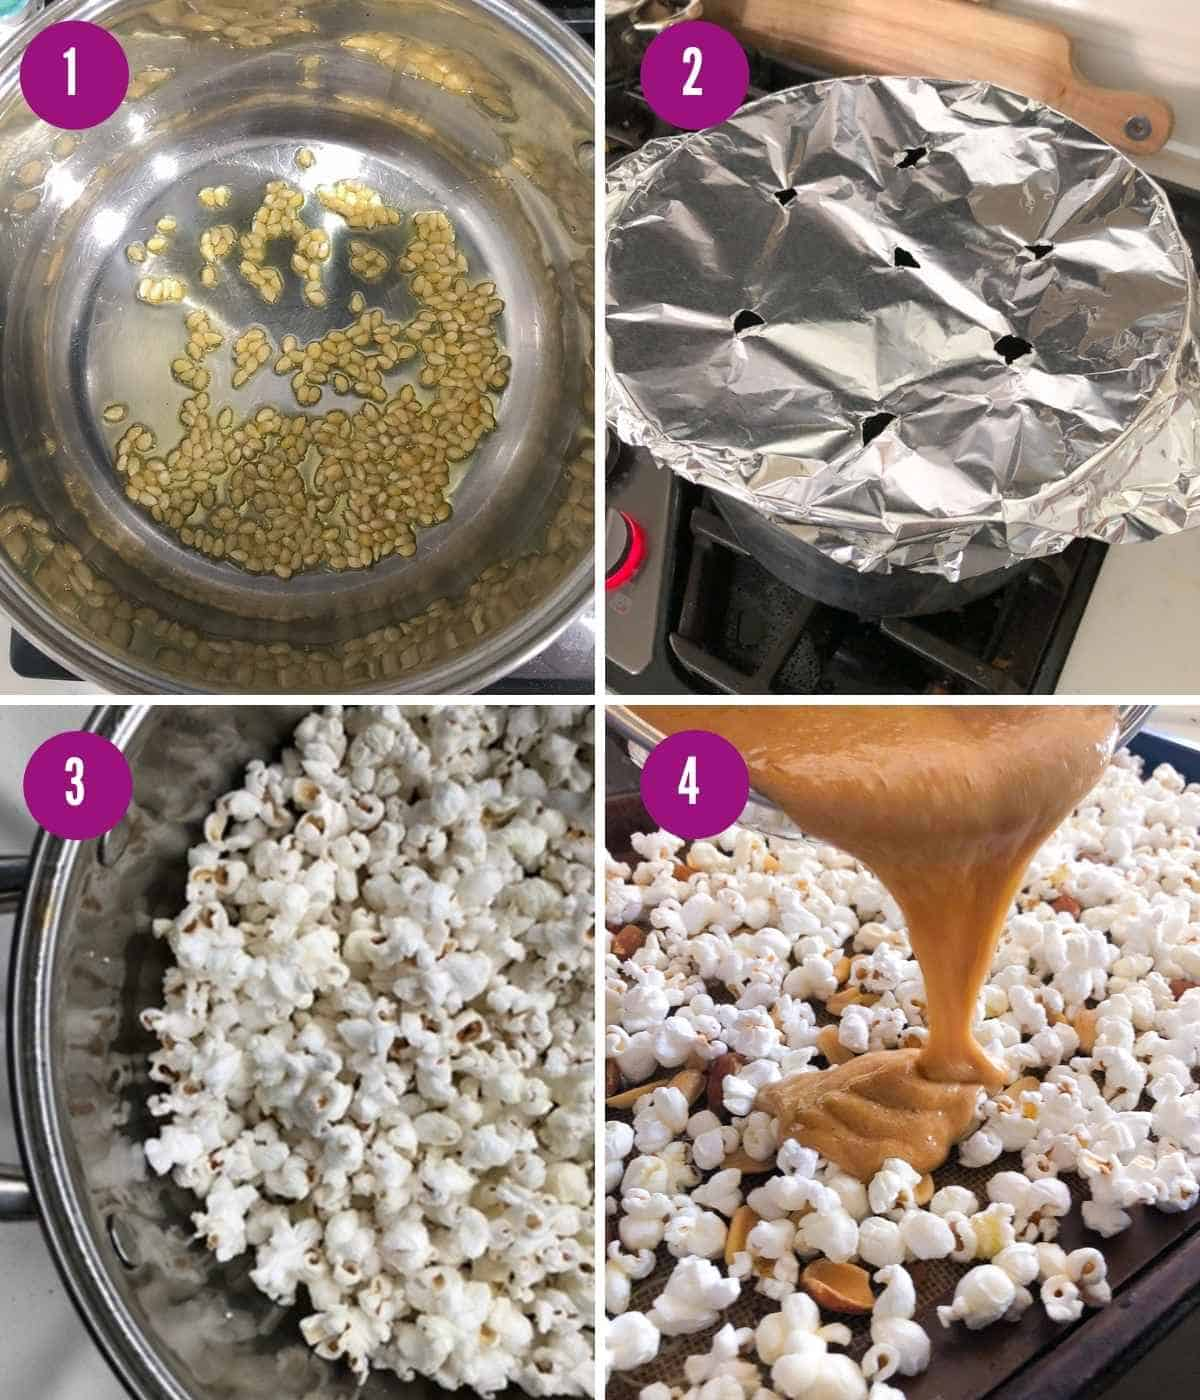 Steps for how to make your own homemade popcorn on the stovetop.